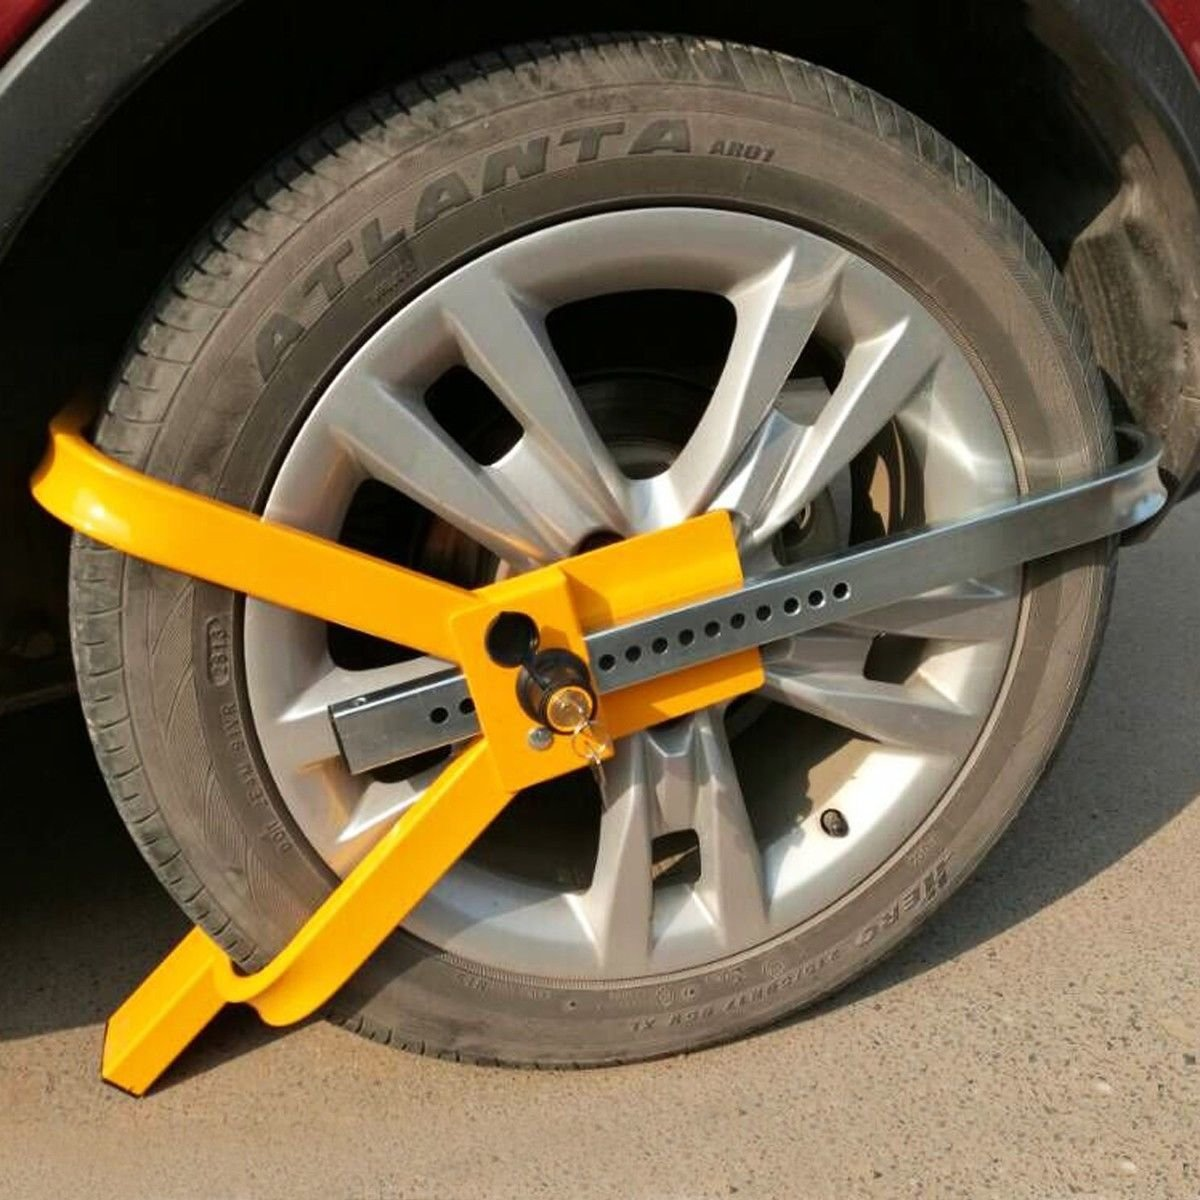 Goplus Wheel Lock Tire Trailer Auto Car Truck Anti-Theft Security Towing Tire Clamp by Goplus (Image #2)